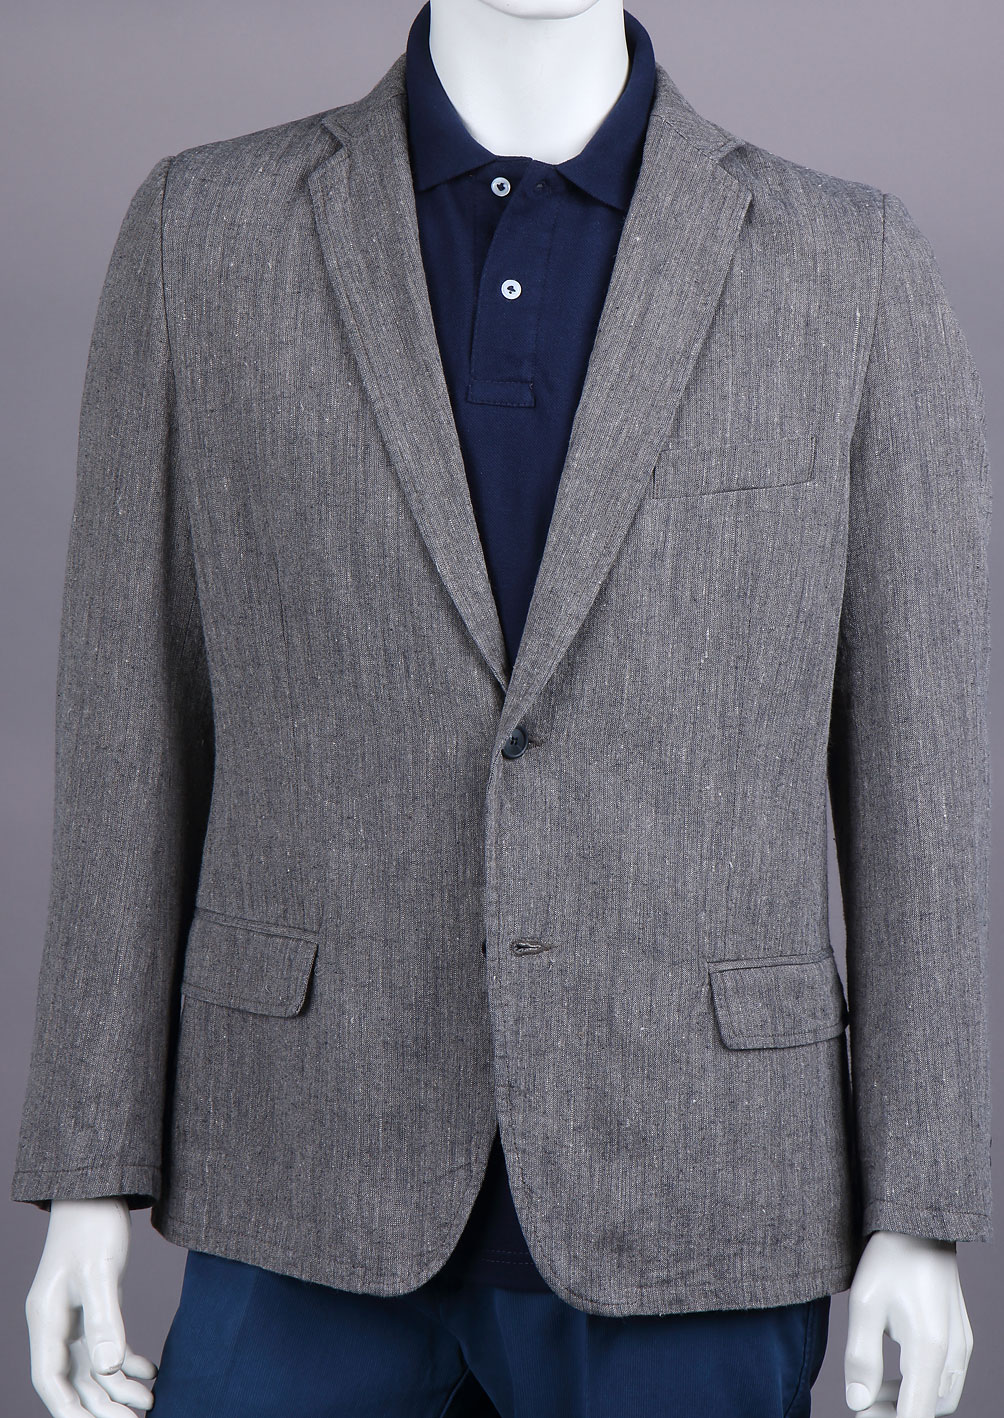 Mens Suit Jacket H53470 Vna Hd E Hdeu